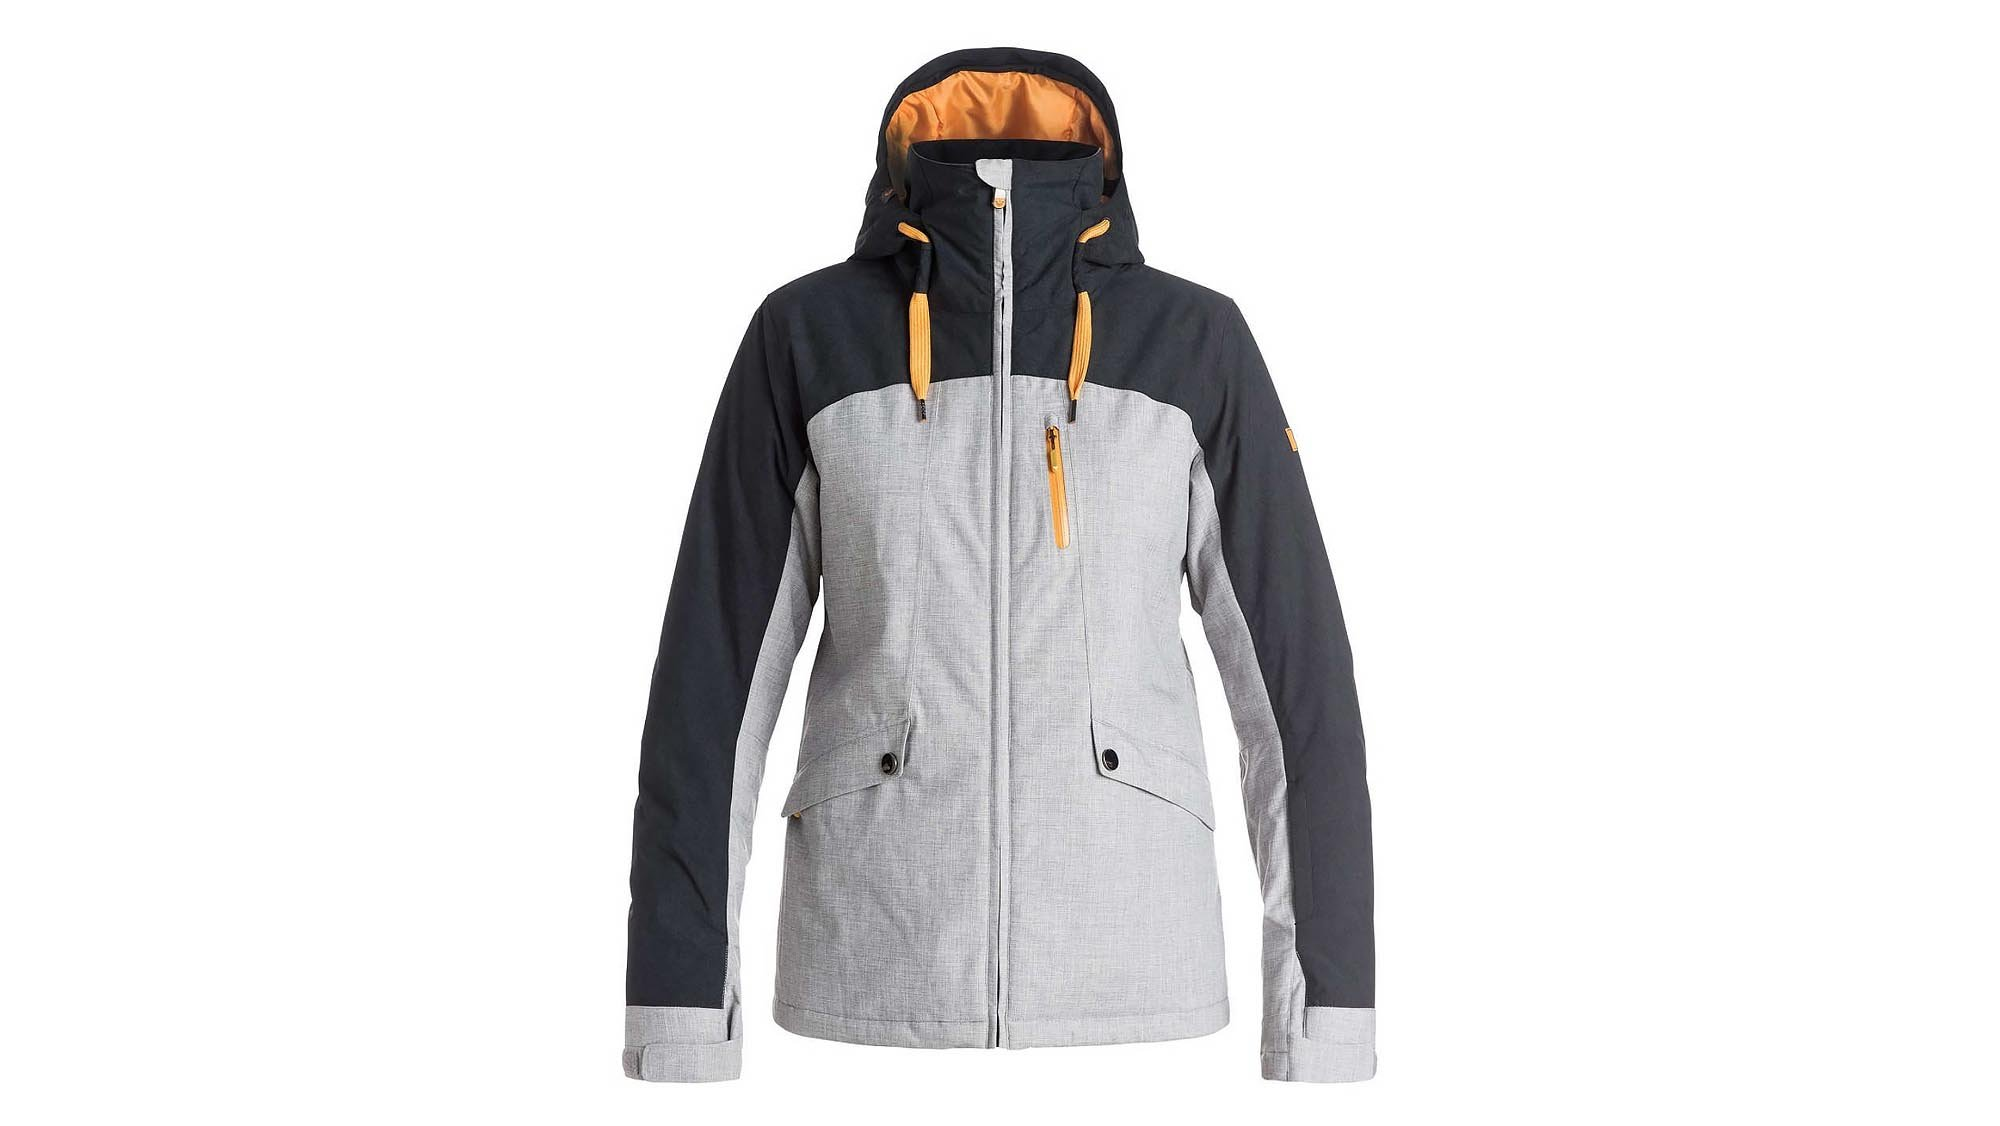 634f06153a Roxy s stylish Wildlife jacket packs in all the design features you d want  in a ski outer